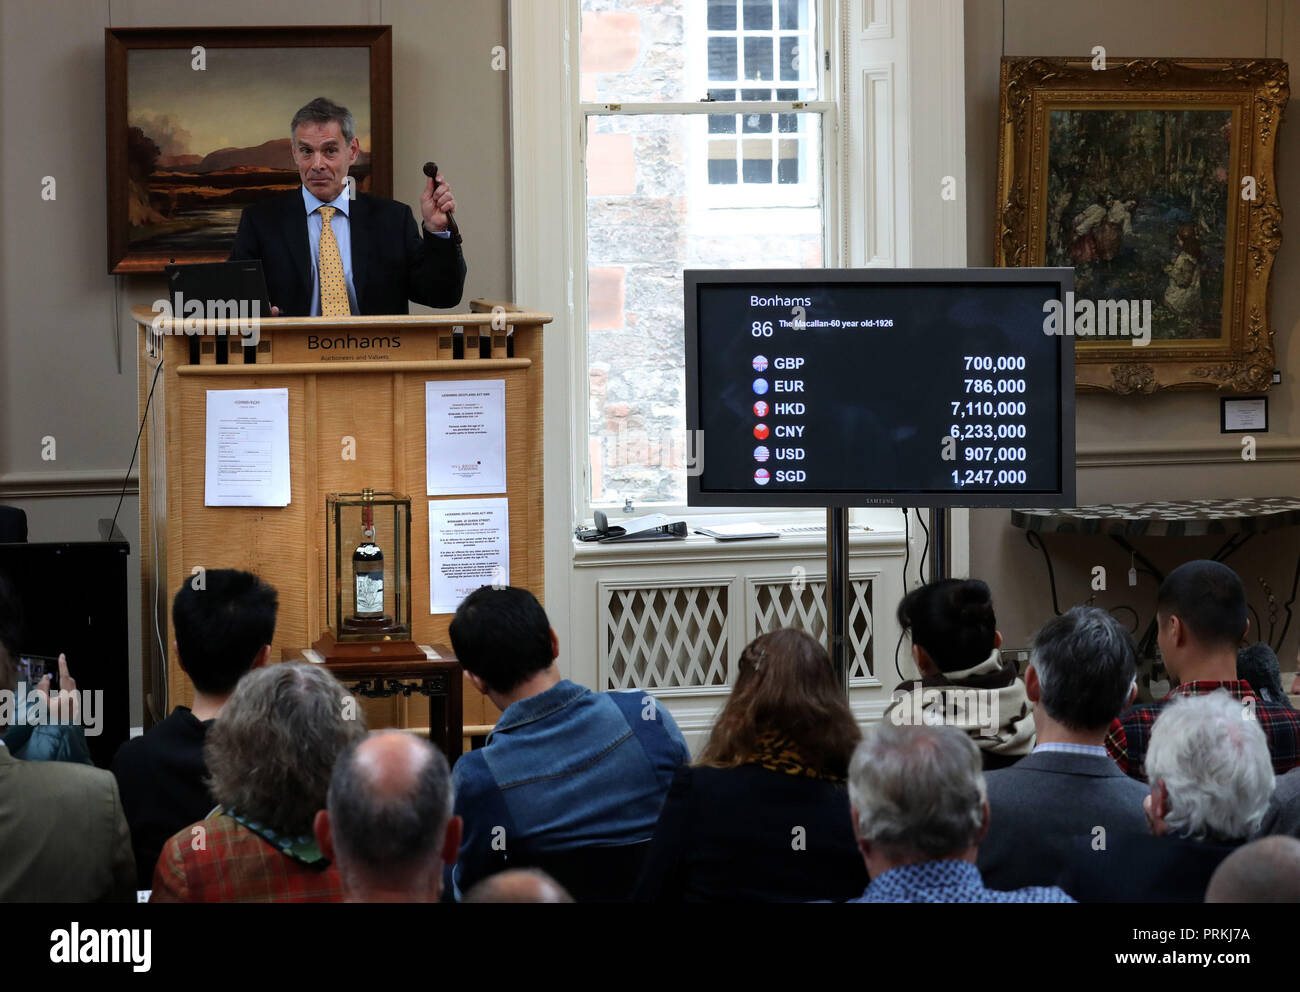 Bonhams auctioneer Charles Graham-Campbell during the auction for the bottle of the world's rarest and most valuable whisky, The Macallan Valerio Adami. It was eventually sold for £848,750 at the Bonhams Whisky Sale at their Edinburgh auction house. - Stock Image